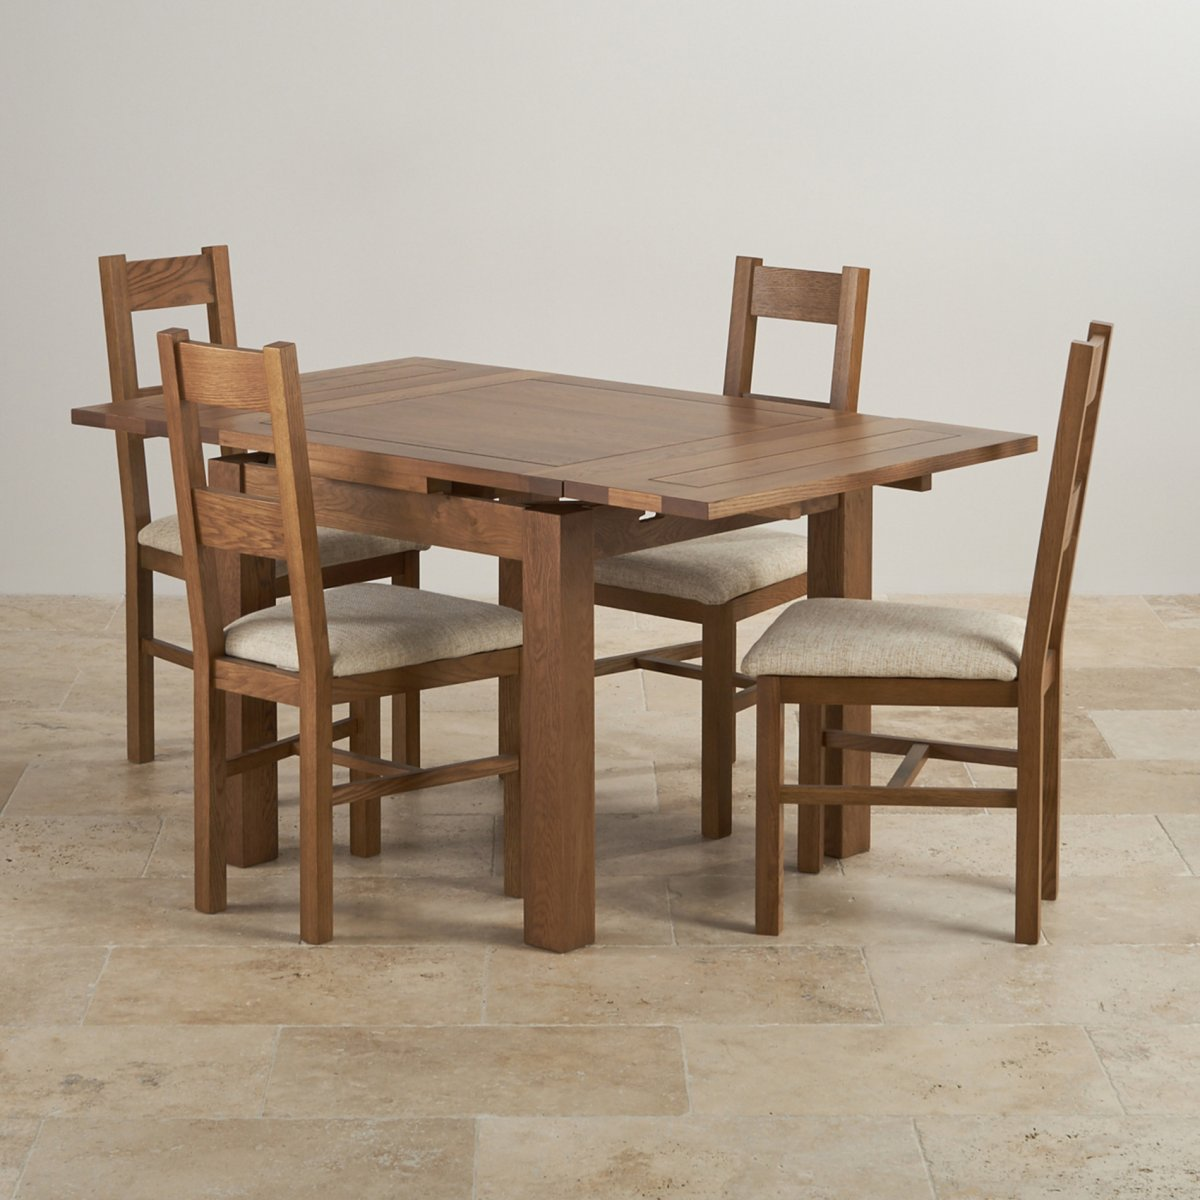 Farmhouse Dining Table And Chairs Rustic Oak Dining Set 3ft Table With 4 Beige Chairs